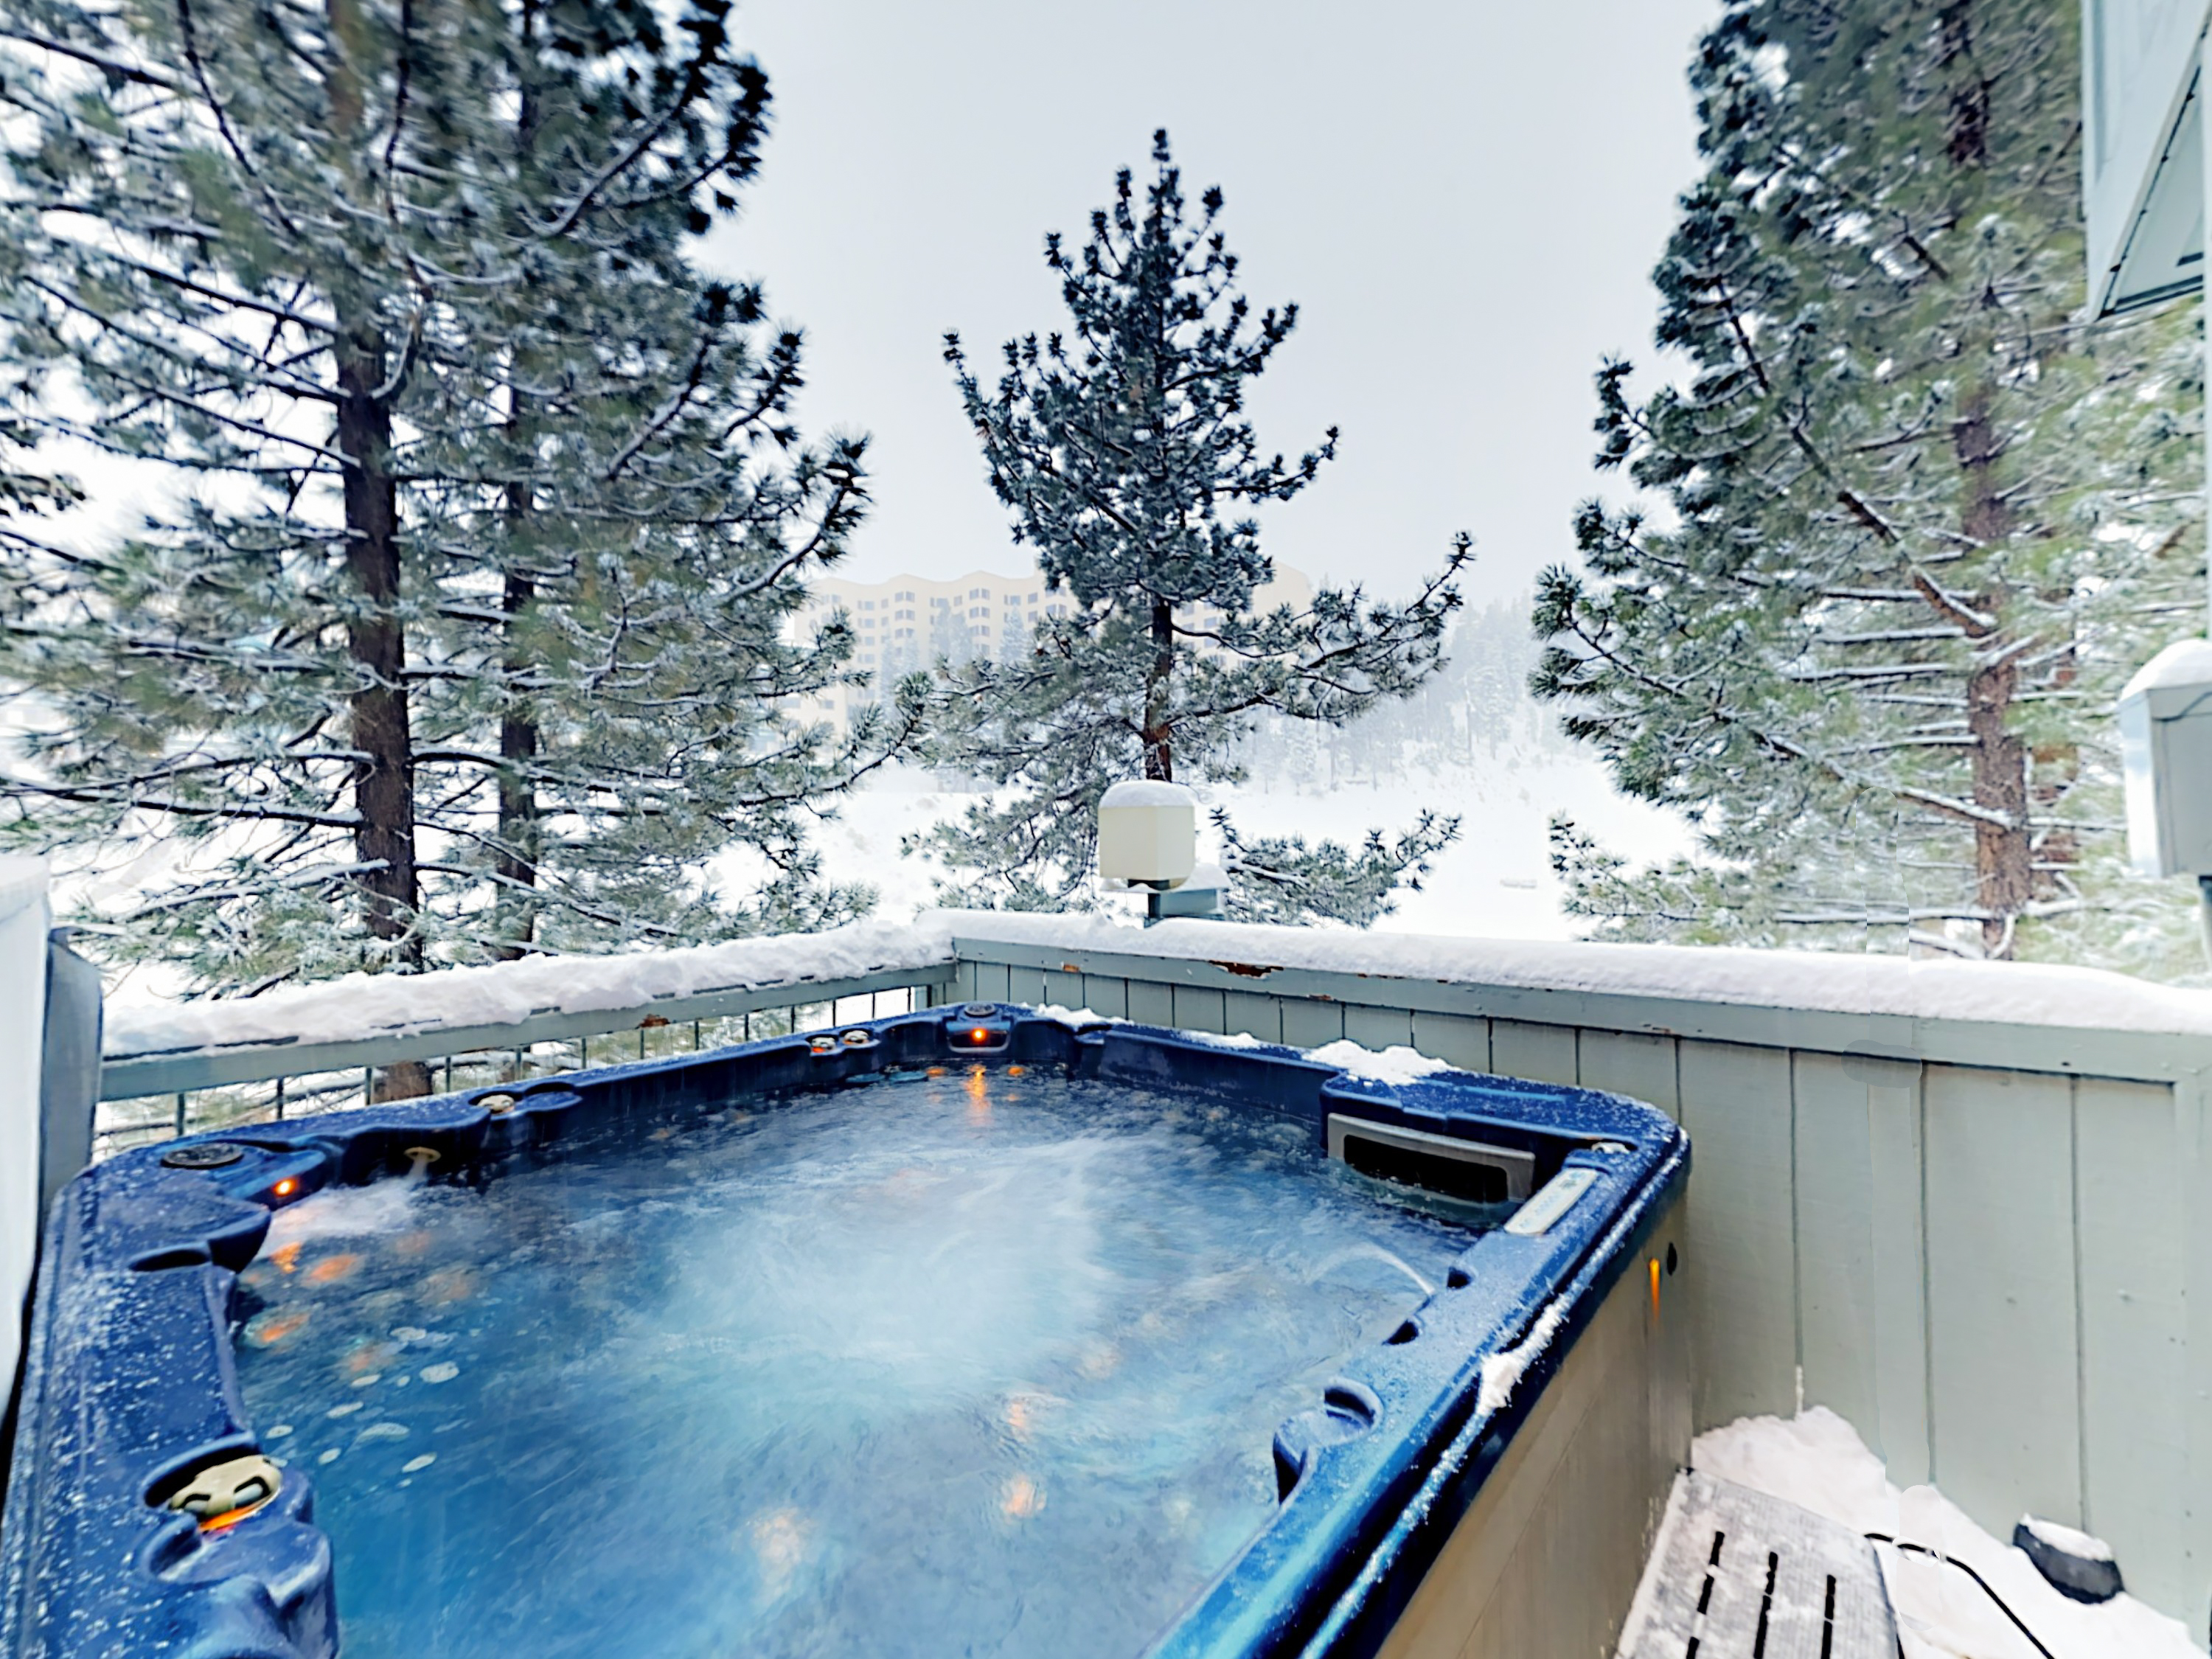 Stateline NV Vacation Rental Welcome to South